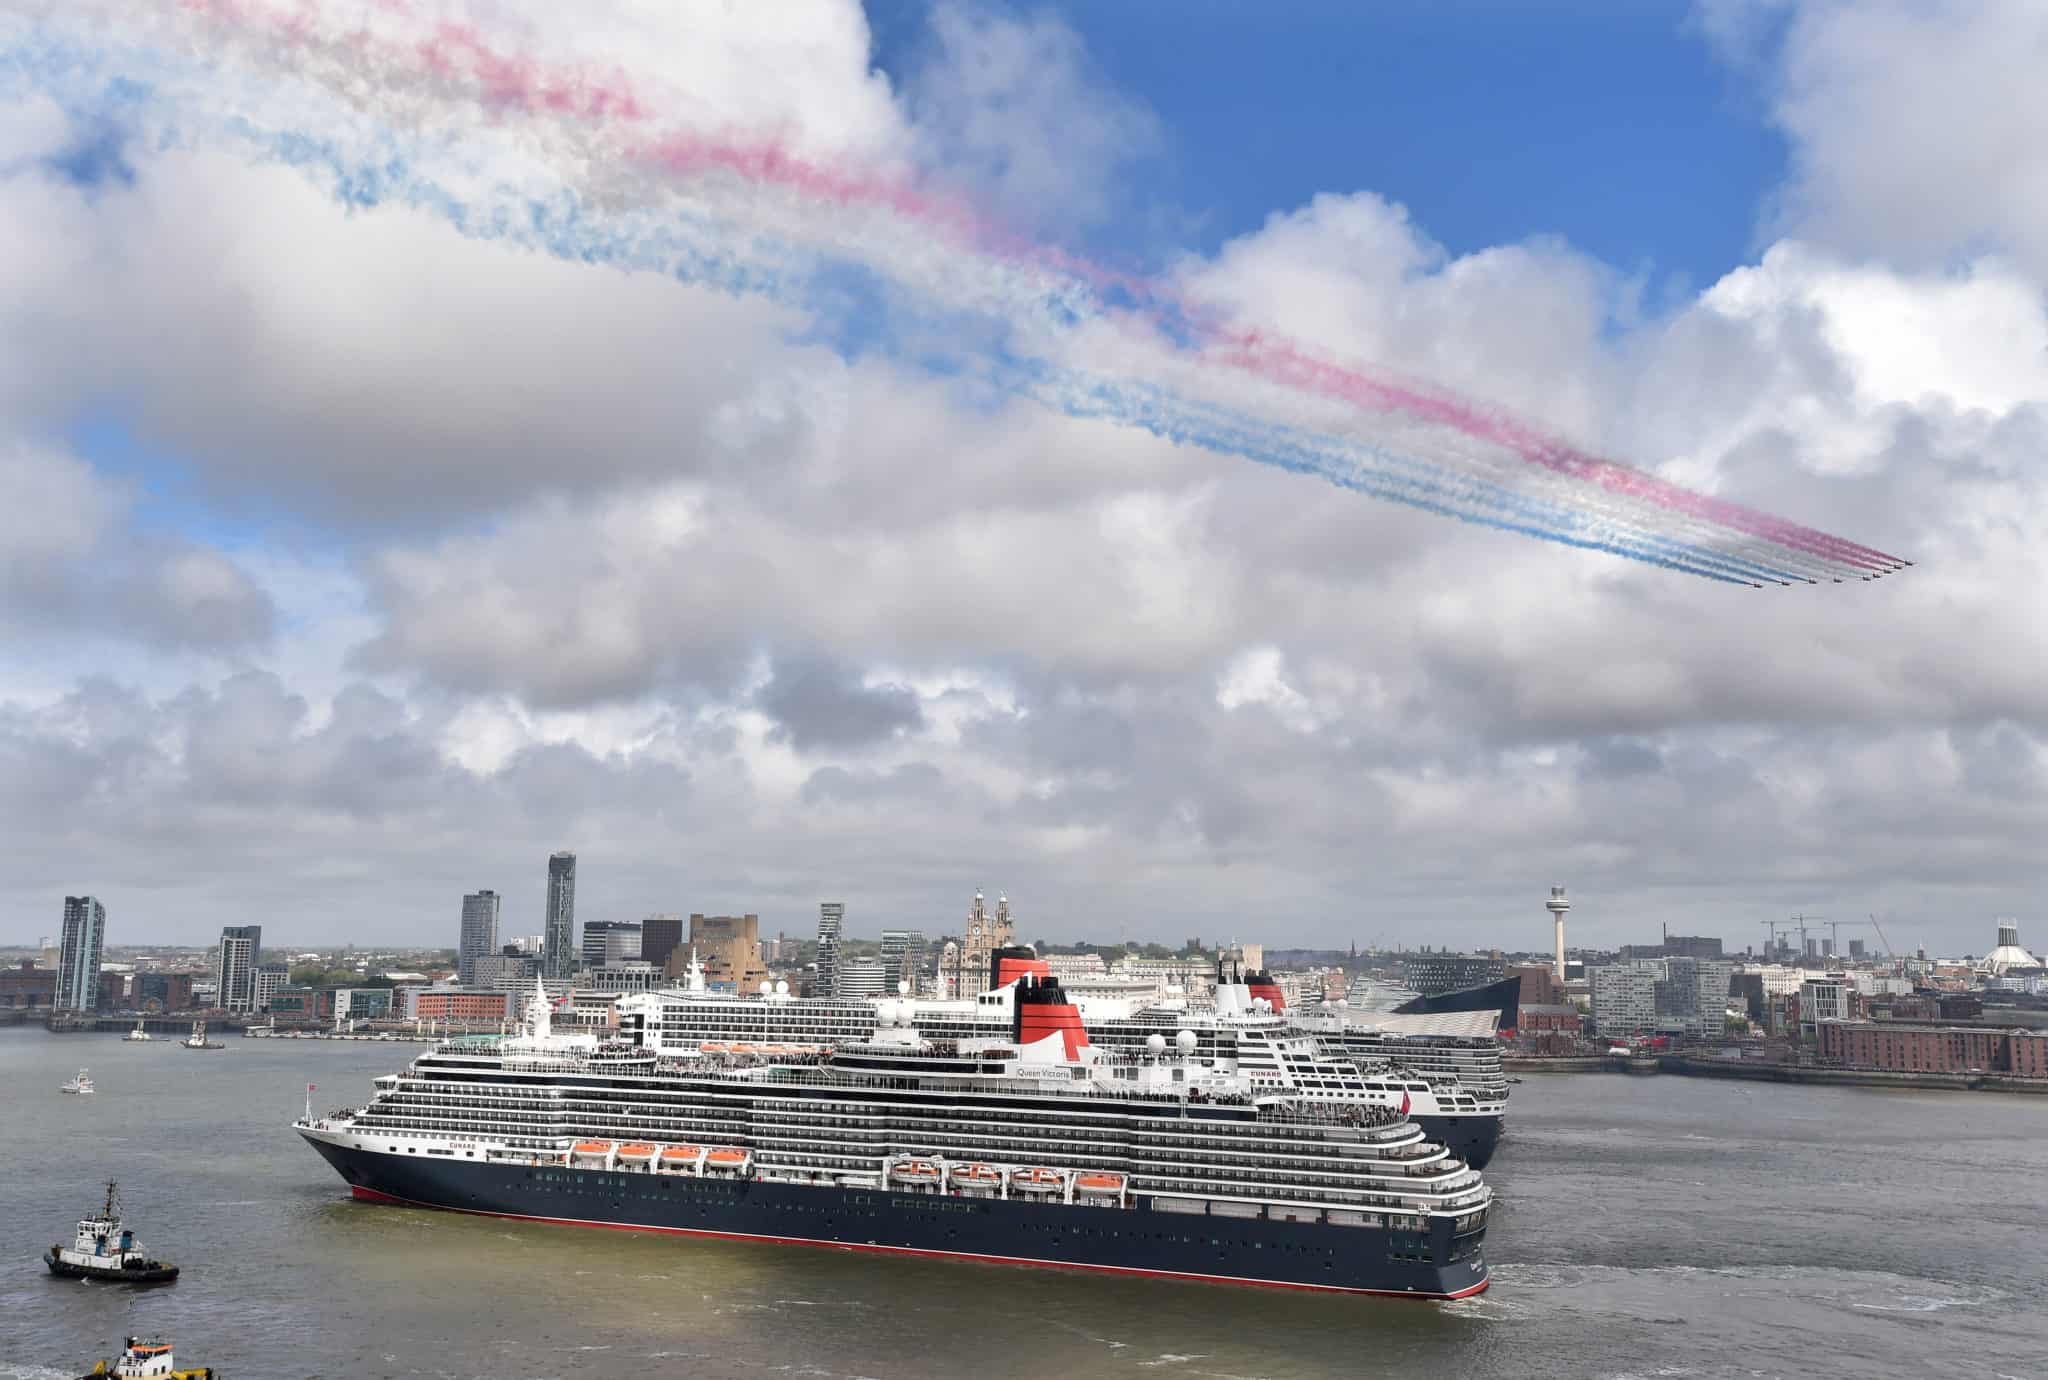 Queen Elizabeth, Queen Victoria and Queen Mary in the river Mersey to celebrate the 175th anniversary of Cunard